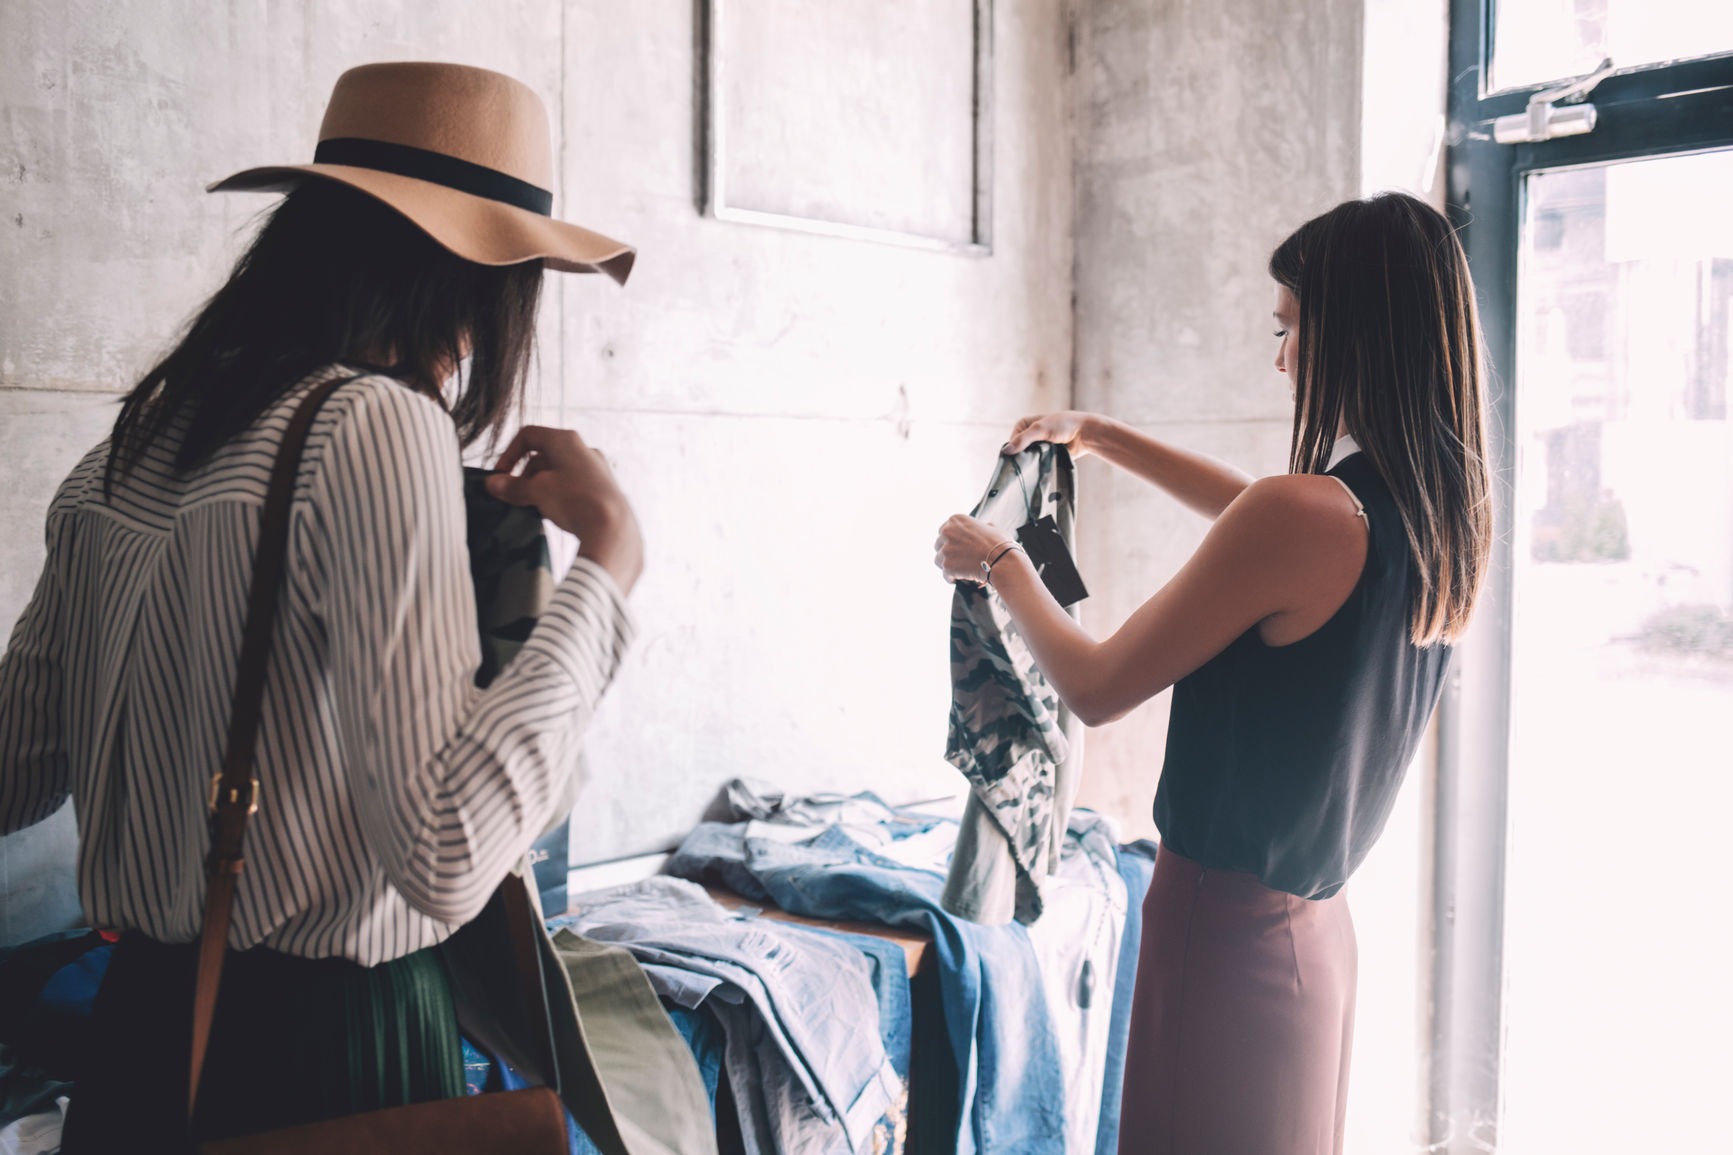 A store associate and a client shopping in a denim store | PredictSpring